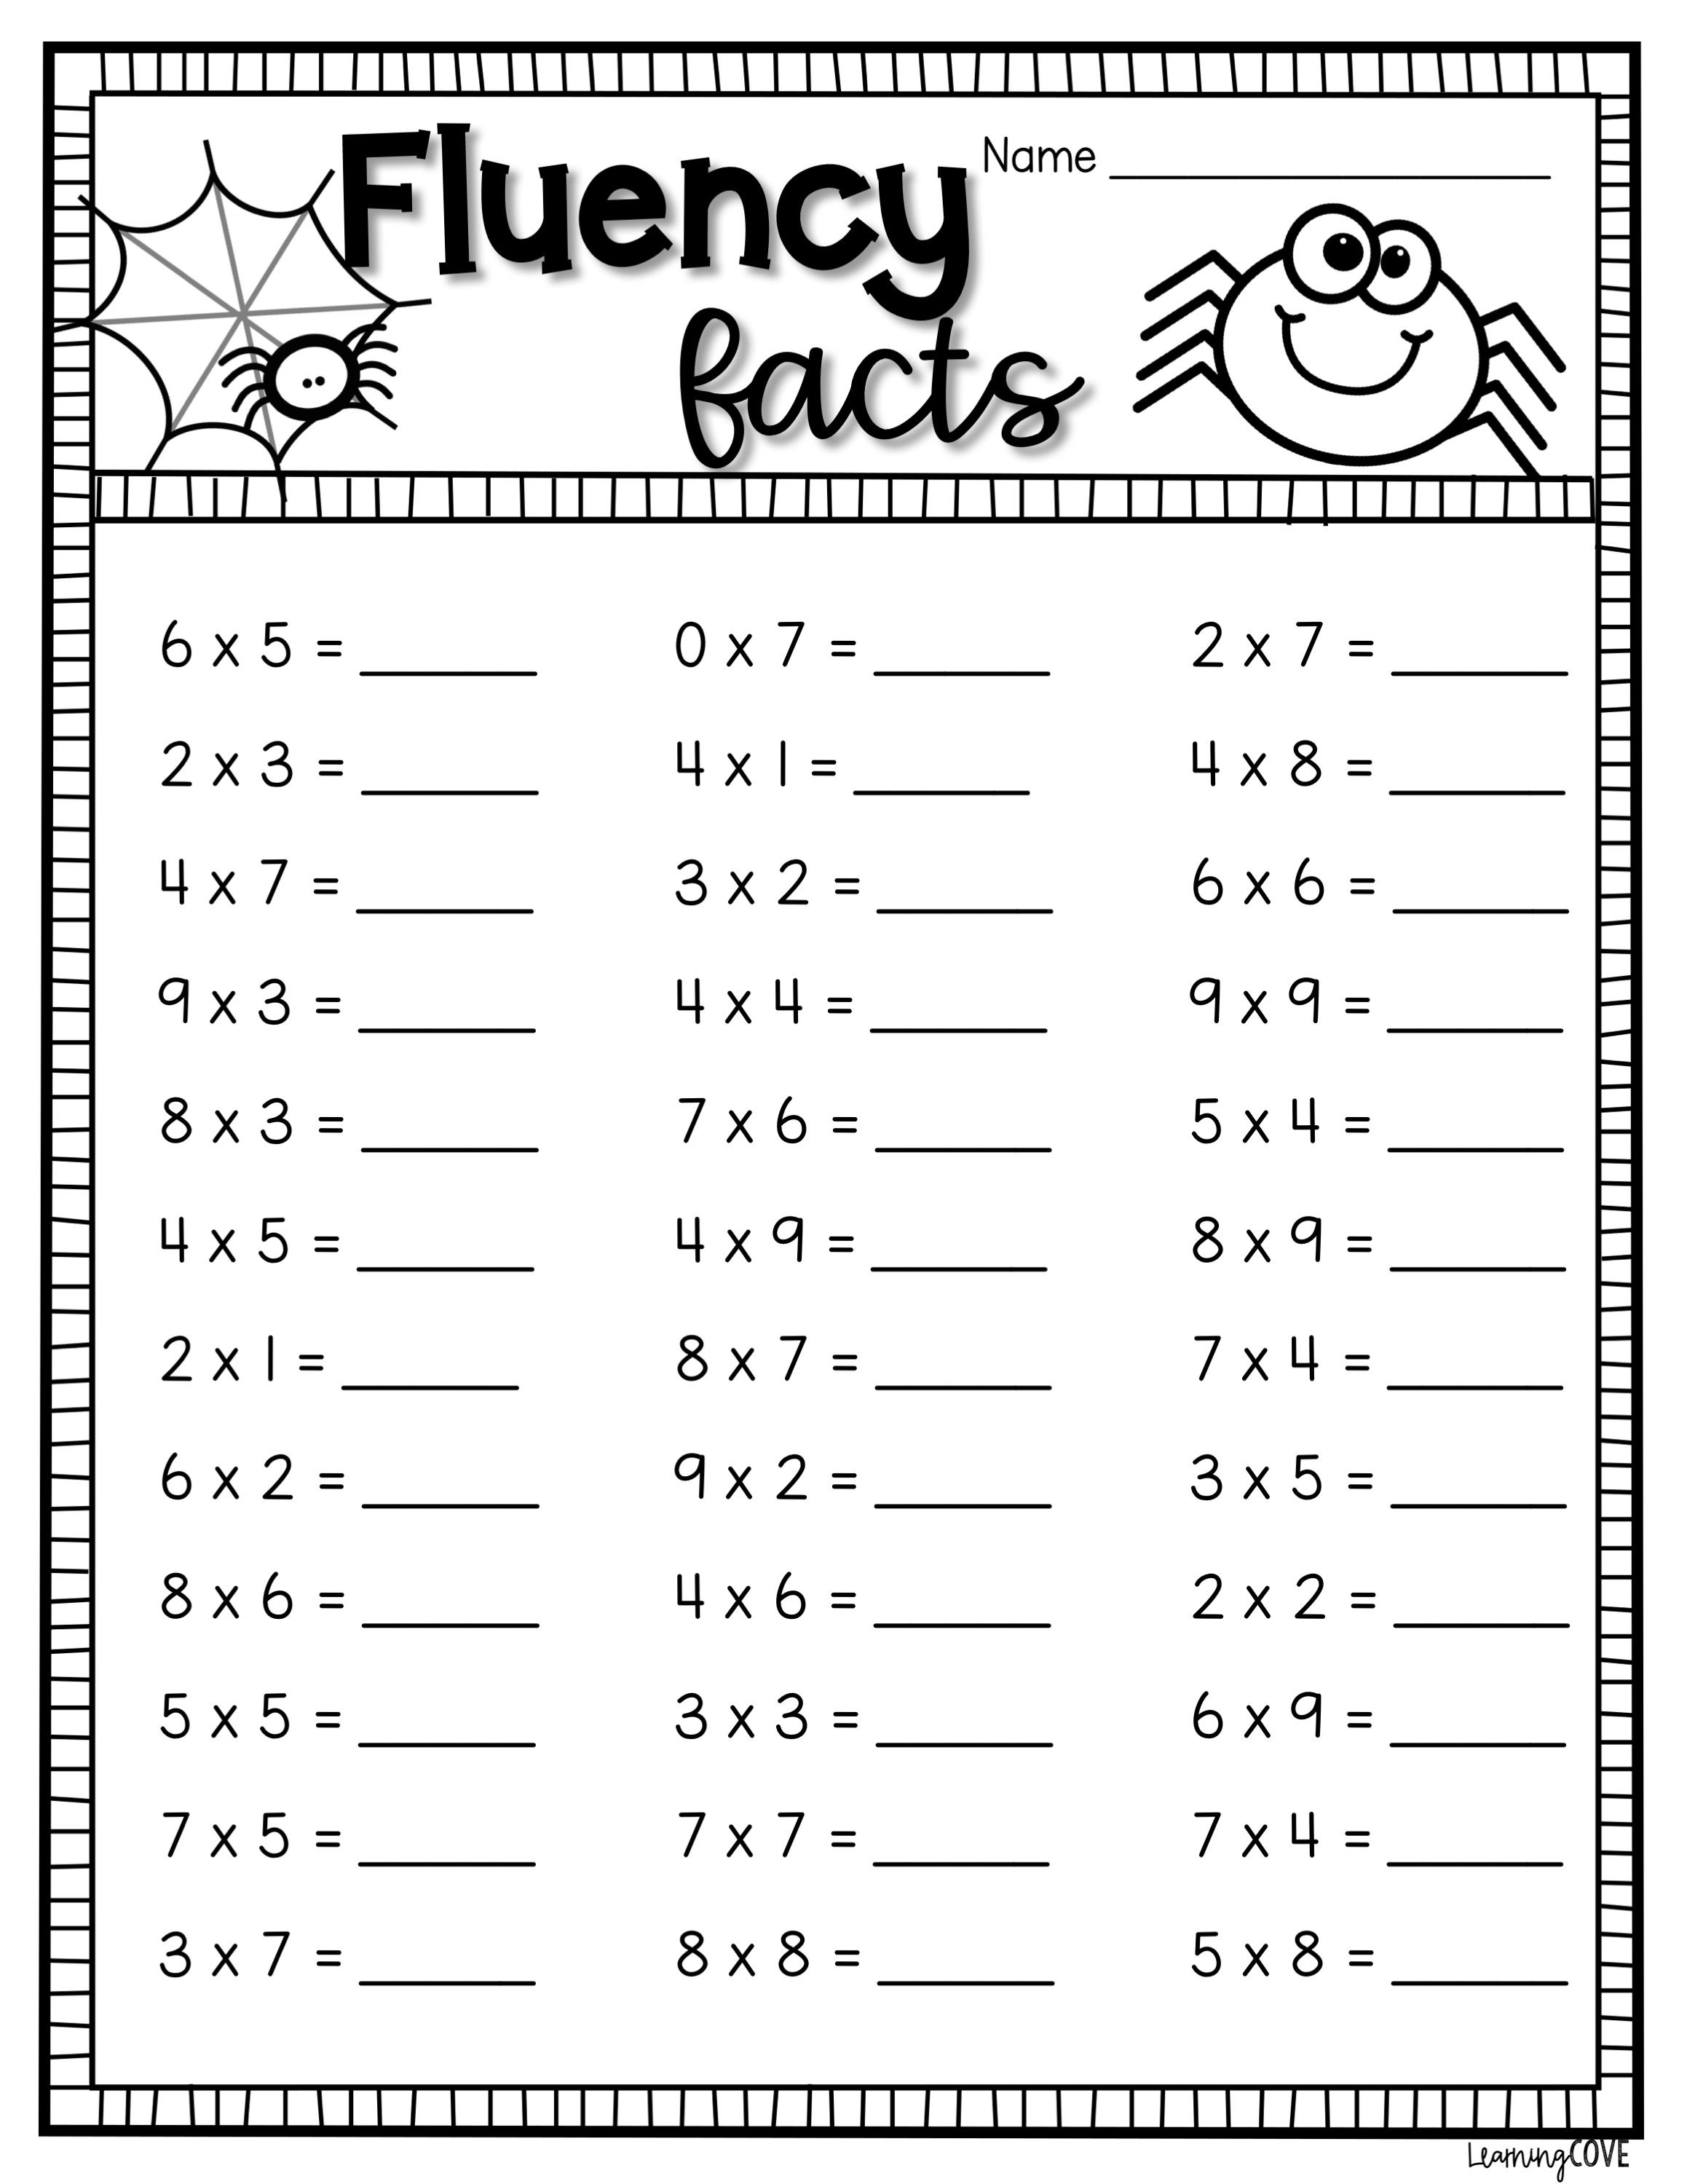 medium resolution of Halloween Math Multiplication Worksheets   Math addition worksheets